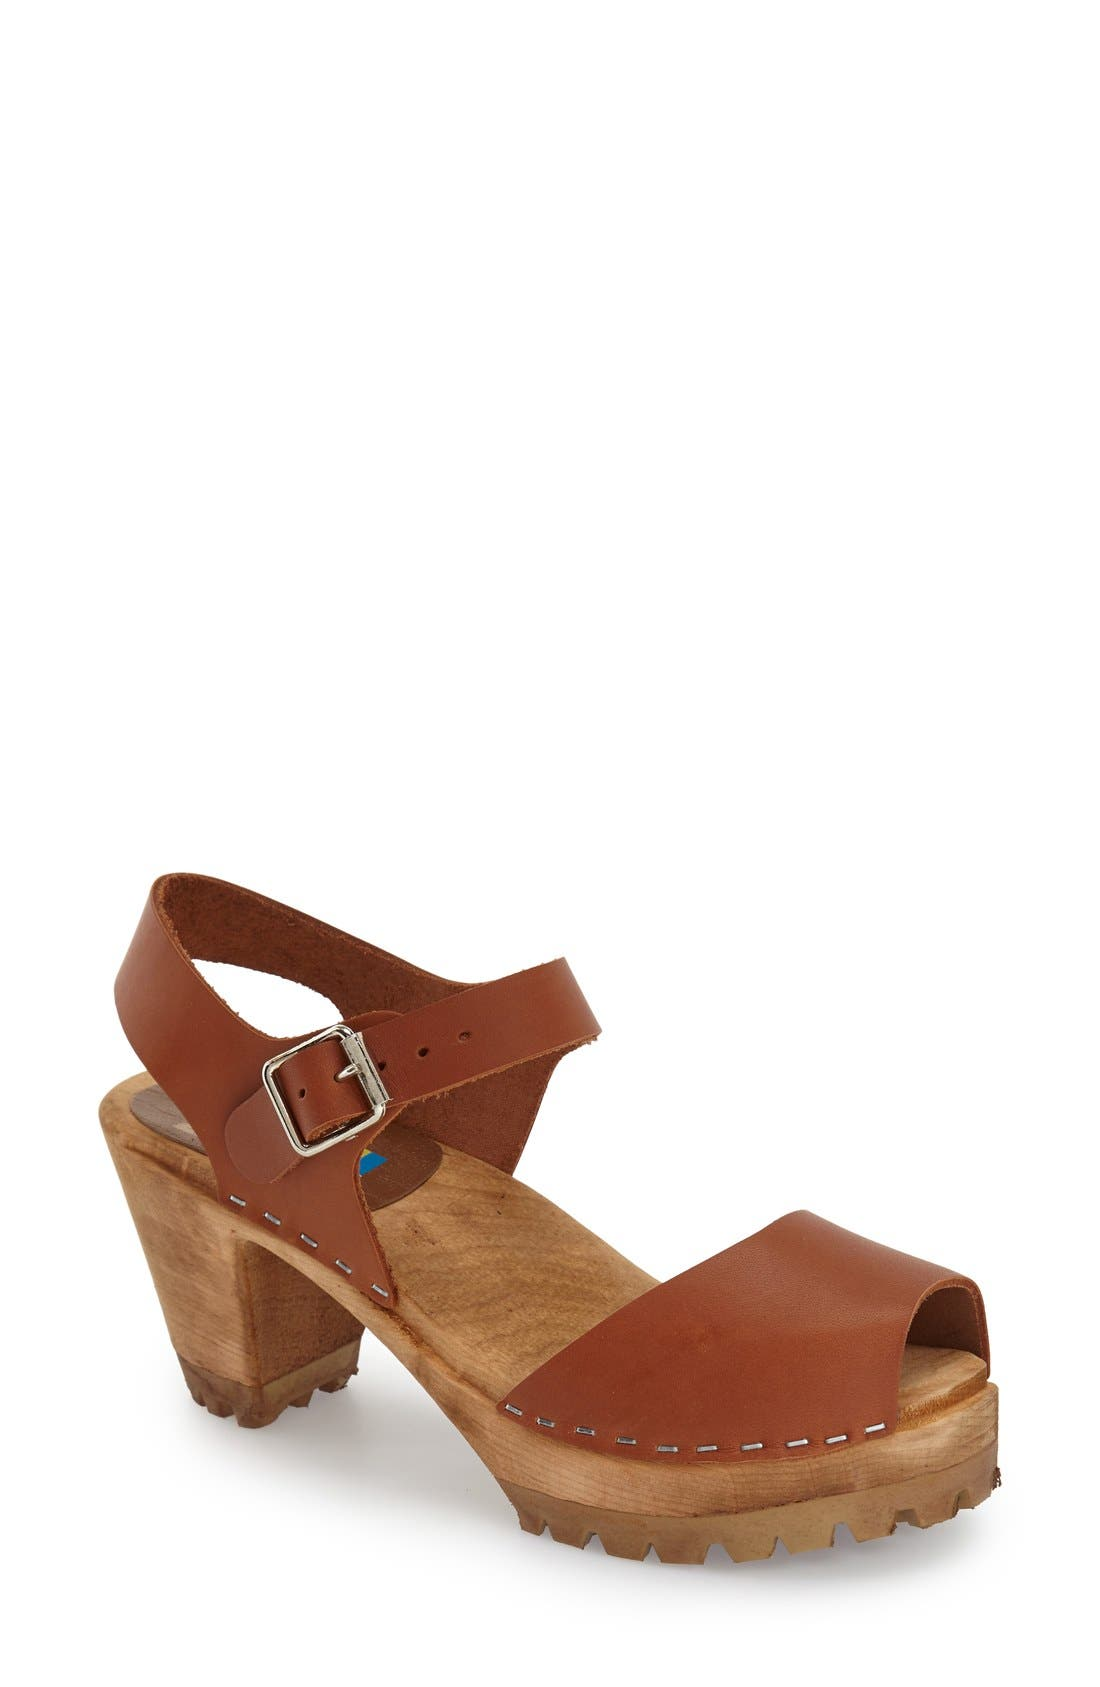 Brown Clog Heels & High-Heel Shoes for Women | Nordstrom